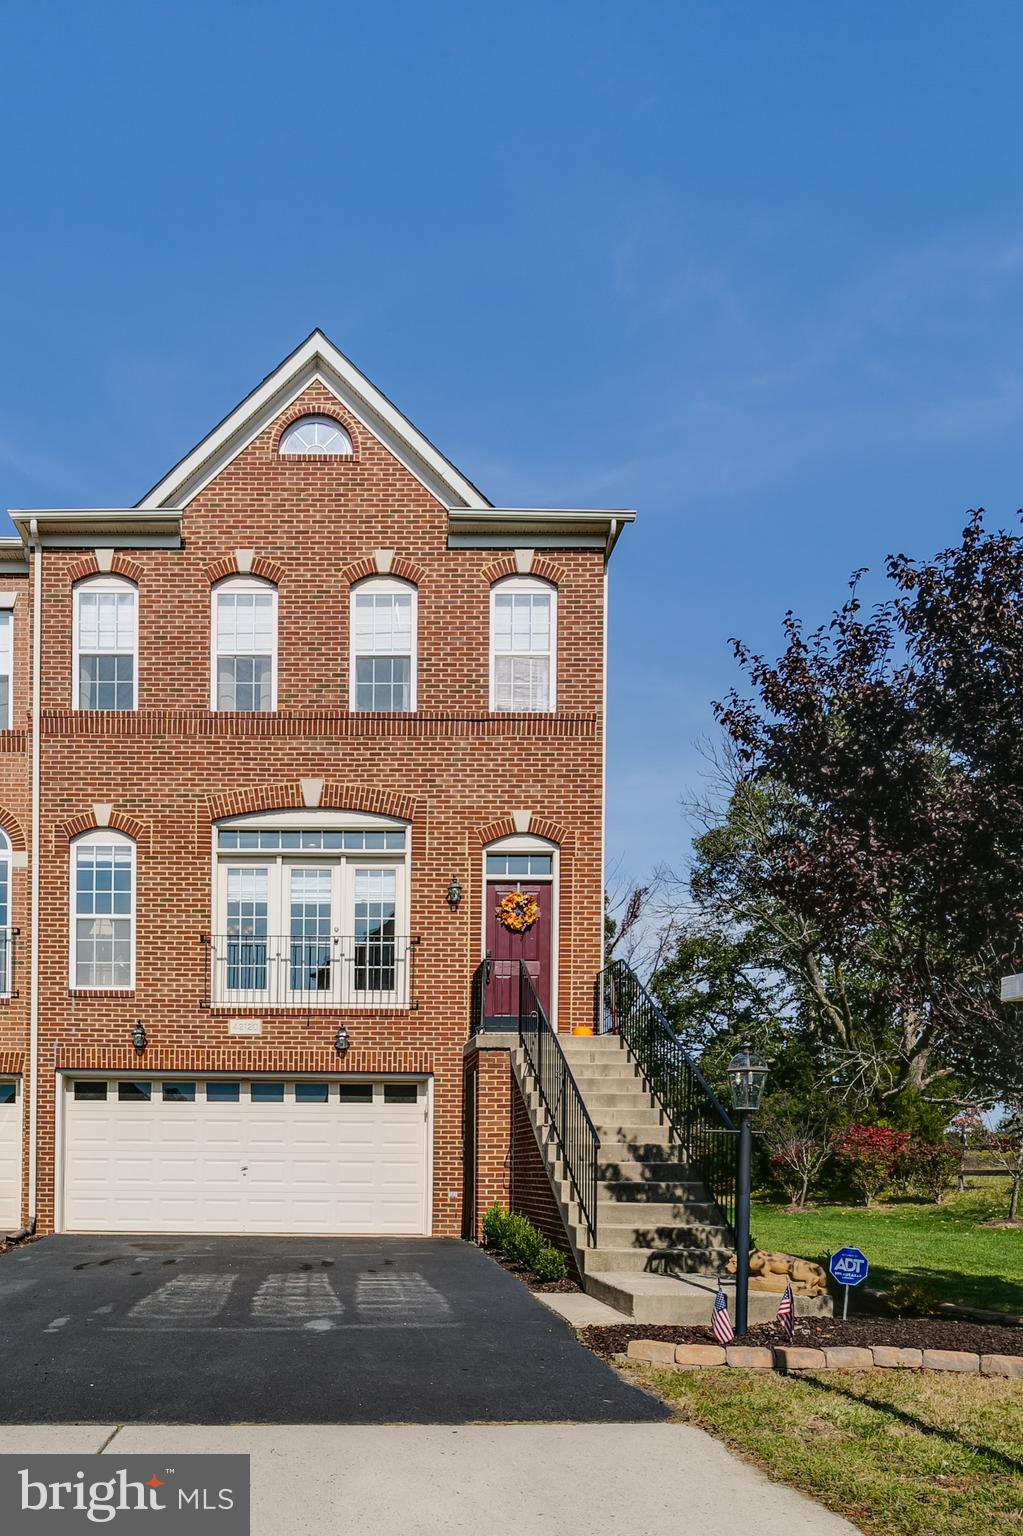 END UNIT AND GORGEOUS, ALL BRICK TOWN HOME!  OPEN BRIGHT, 4 BREDROOMS, 3.5 BATHS, HARDWOODS MAIN LEV